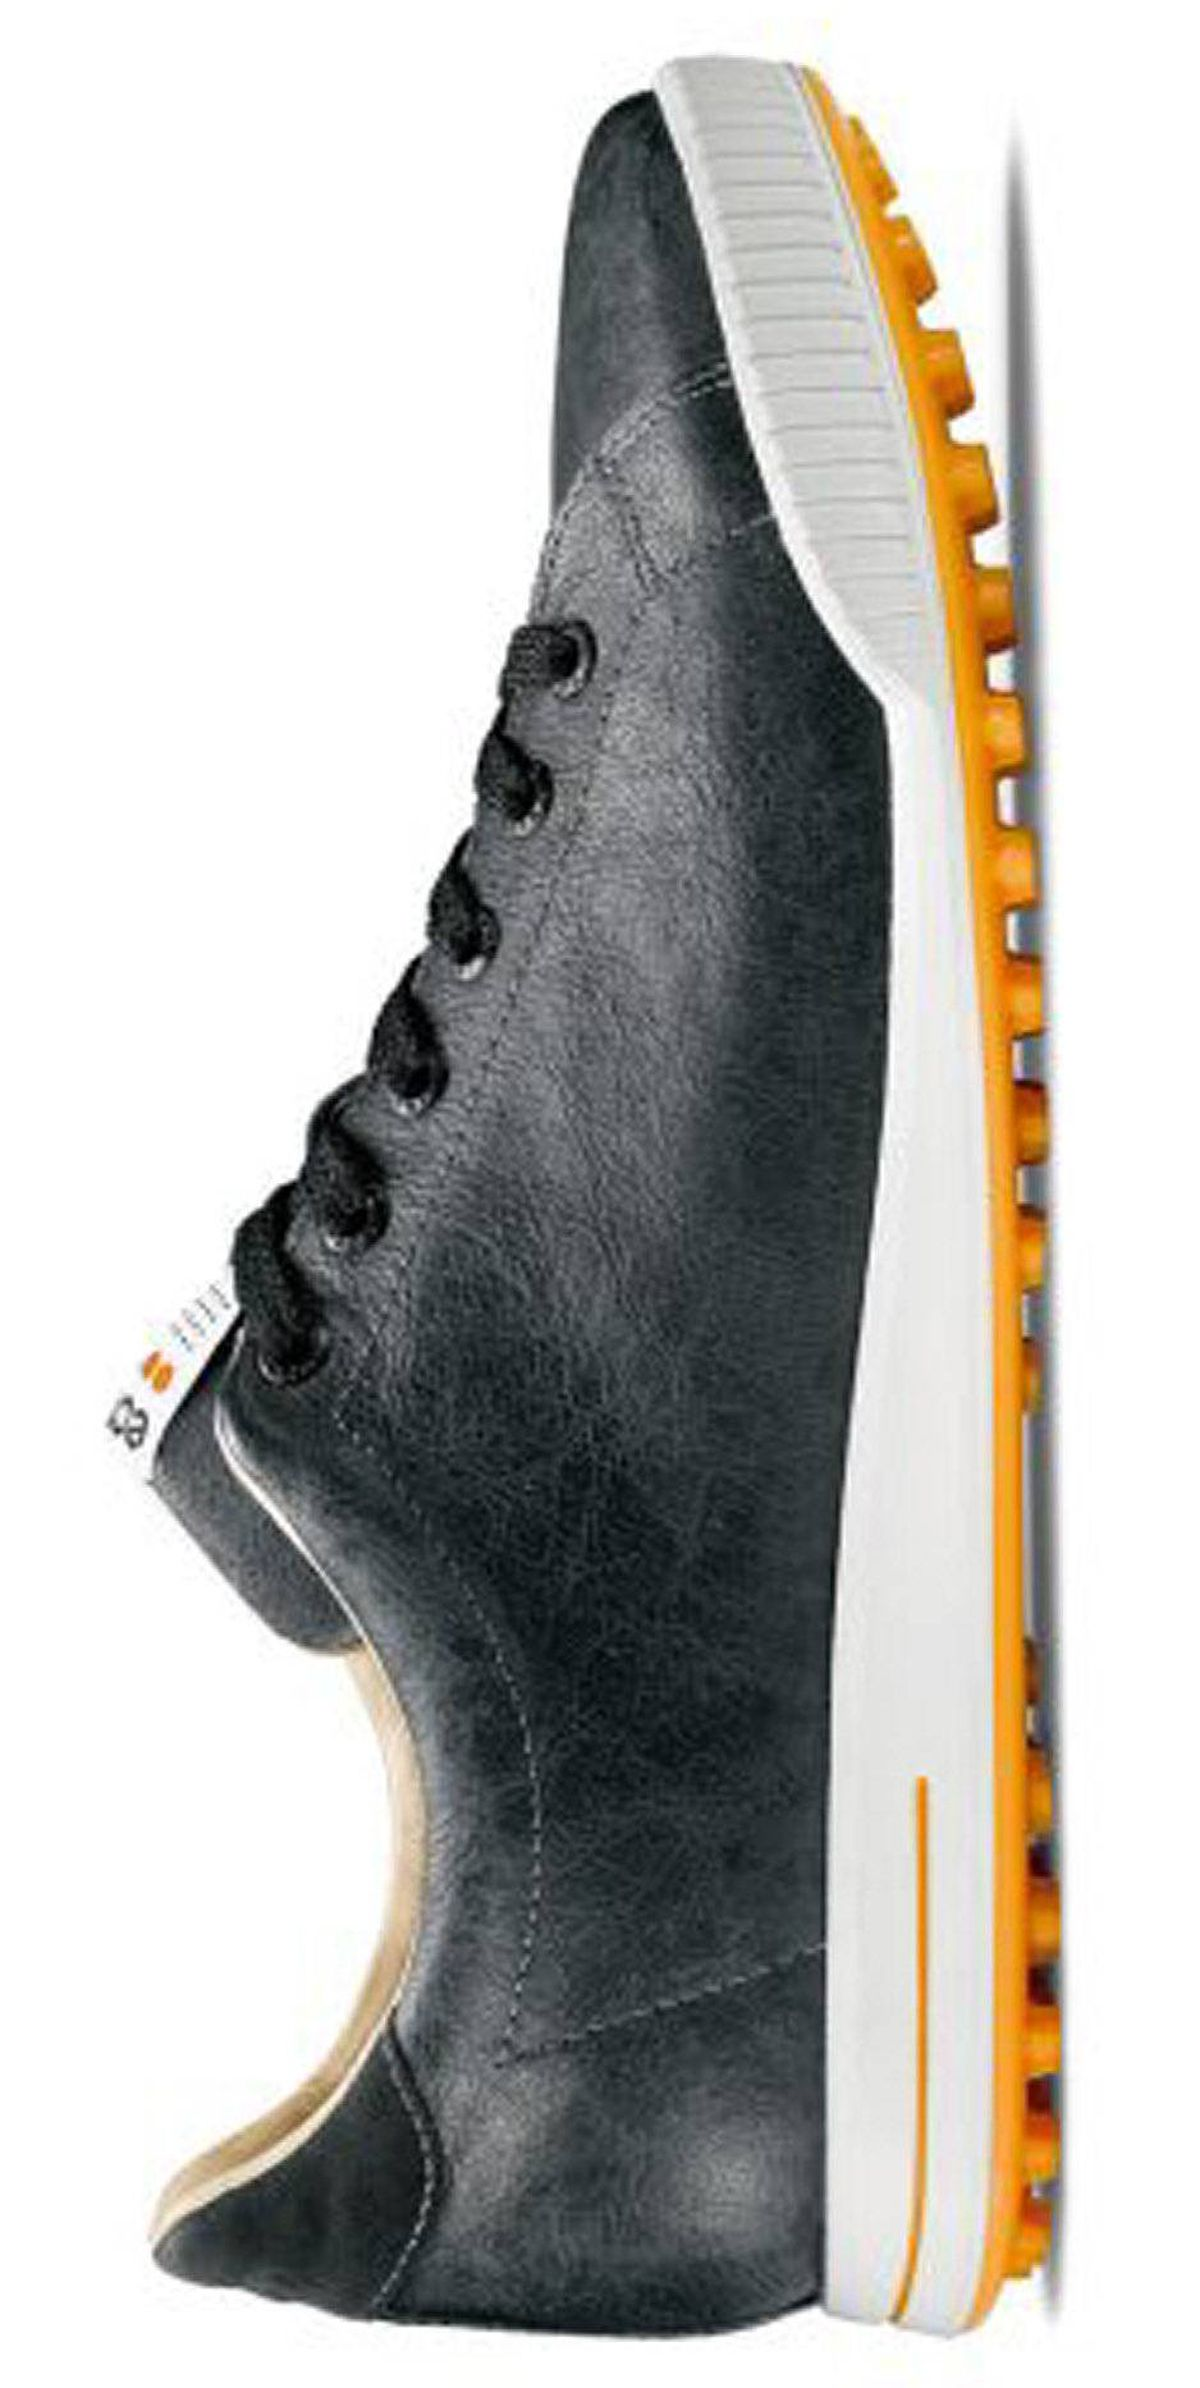 Wear it The Ecco Golf Street - PGA Tour shoe of choice for Fred Couples - is as unpretentious as footwear gets on the greens. The sneaker-like, soft leather golf cleat has a breathable lining and cushiony foam insole for comfort and flexibility. Even without spikes, its pre-moulded traction bars support a sturdy stance on the course, and the low-key look transitions easily from clubhouse to coffee shop. In Ecco stores or at eccocanada.com, $200